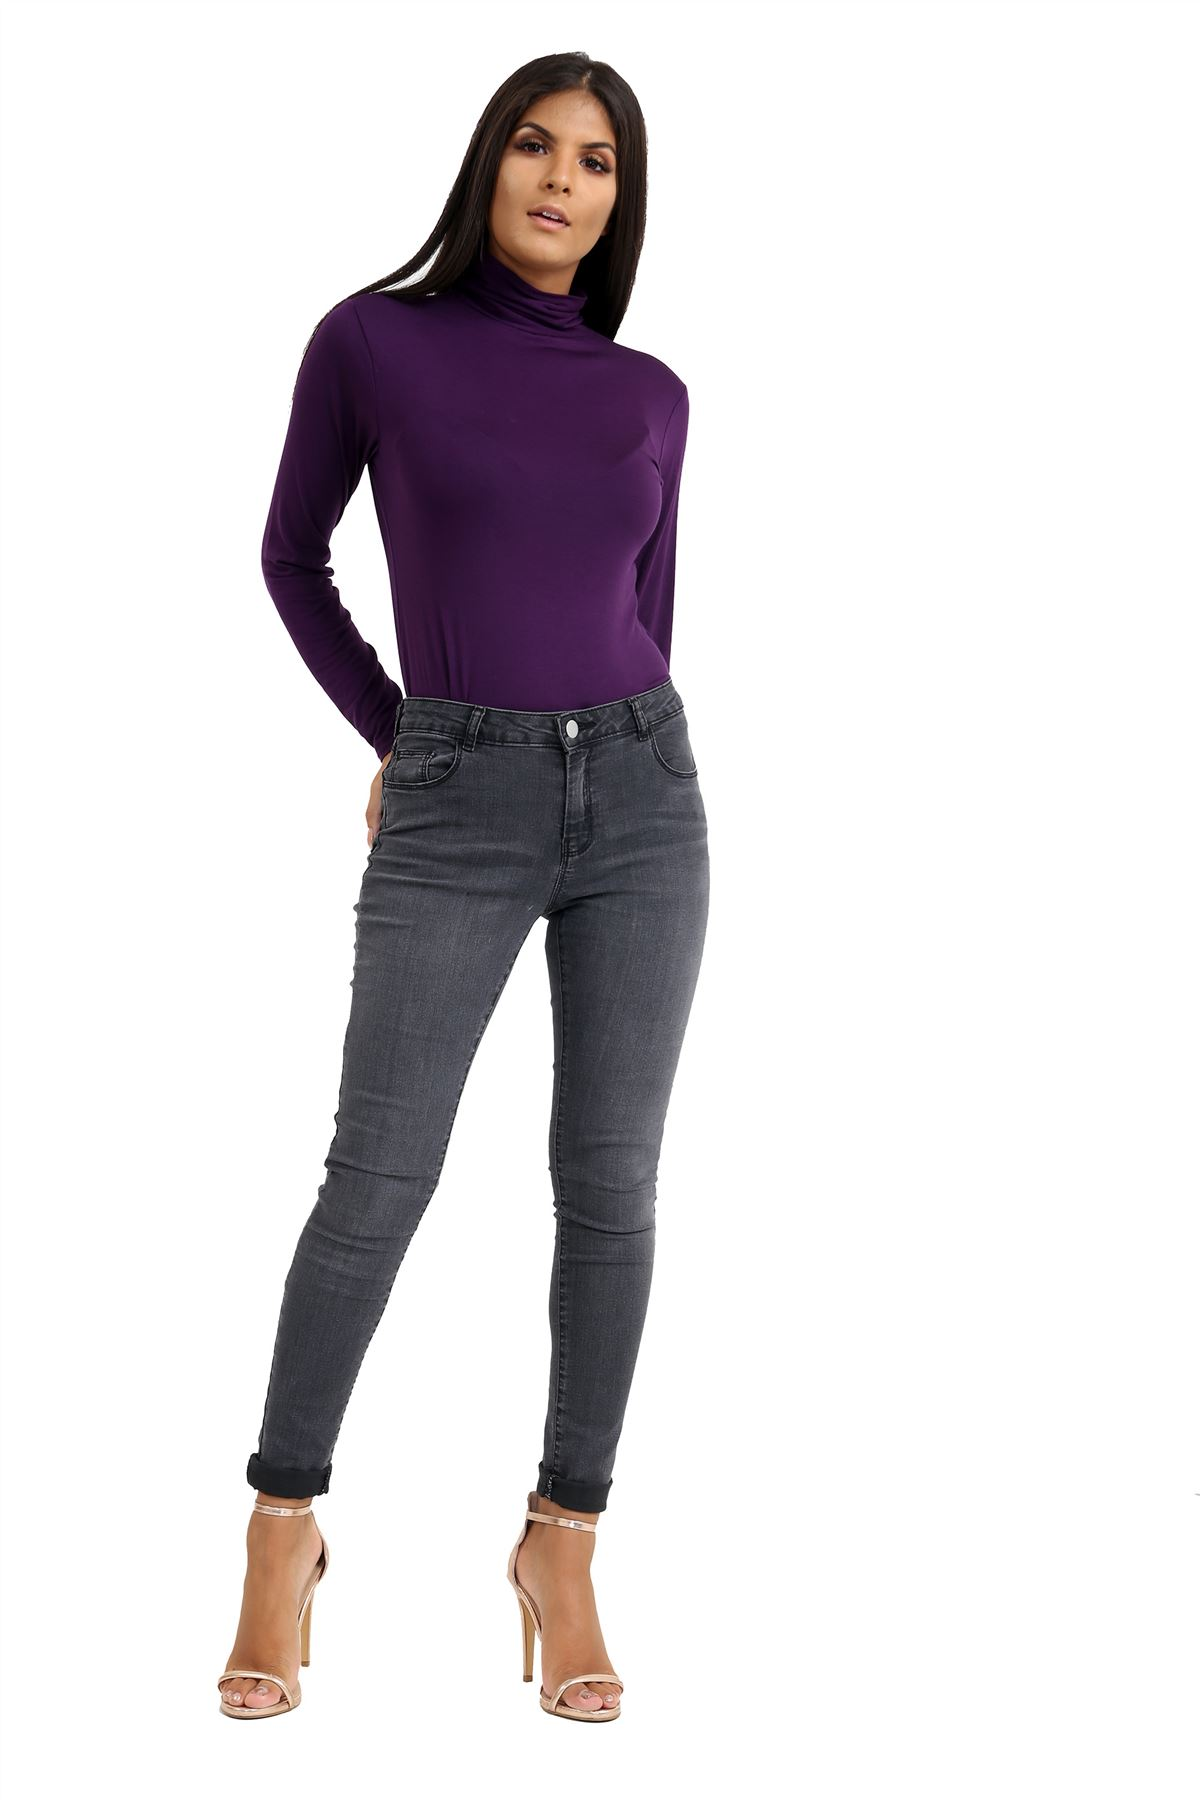 New-Ladies-Long-Sleeve-Plain-Turtle-Polo-Roll-Neck-Stretch-Jumper-T-Shirt-TeeTop thumbnail 89